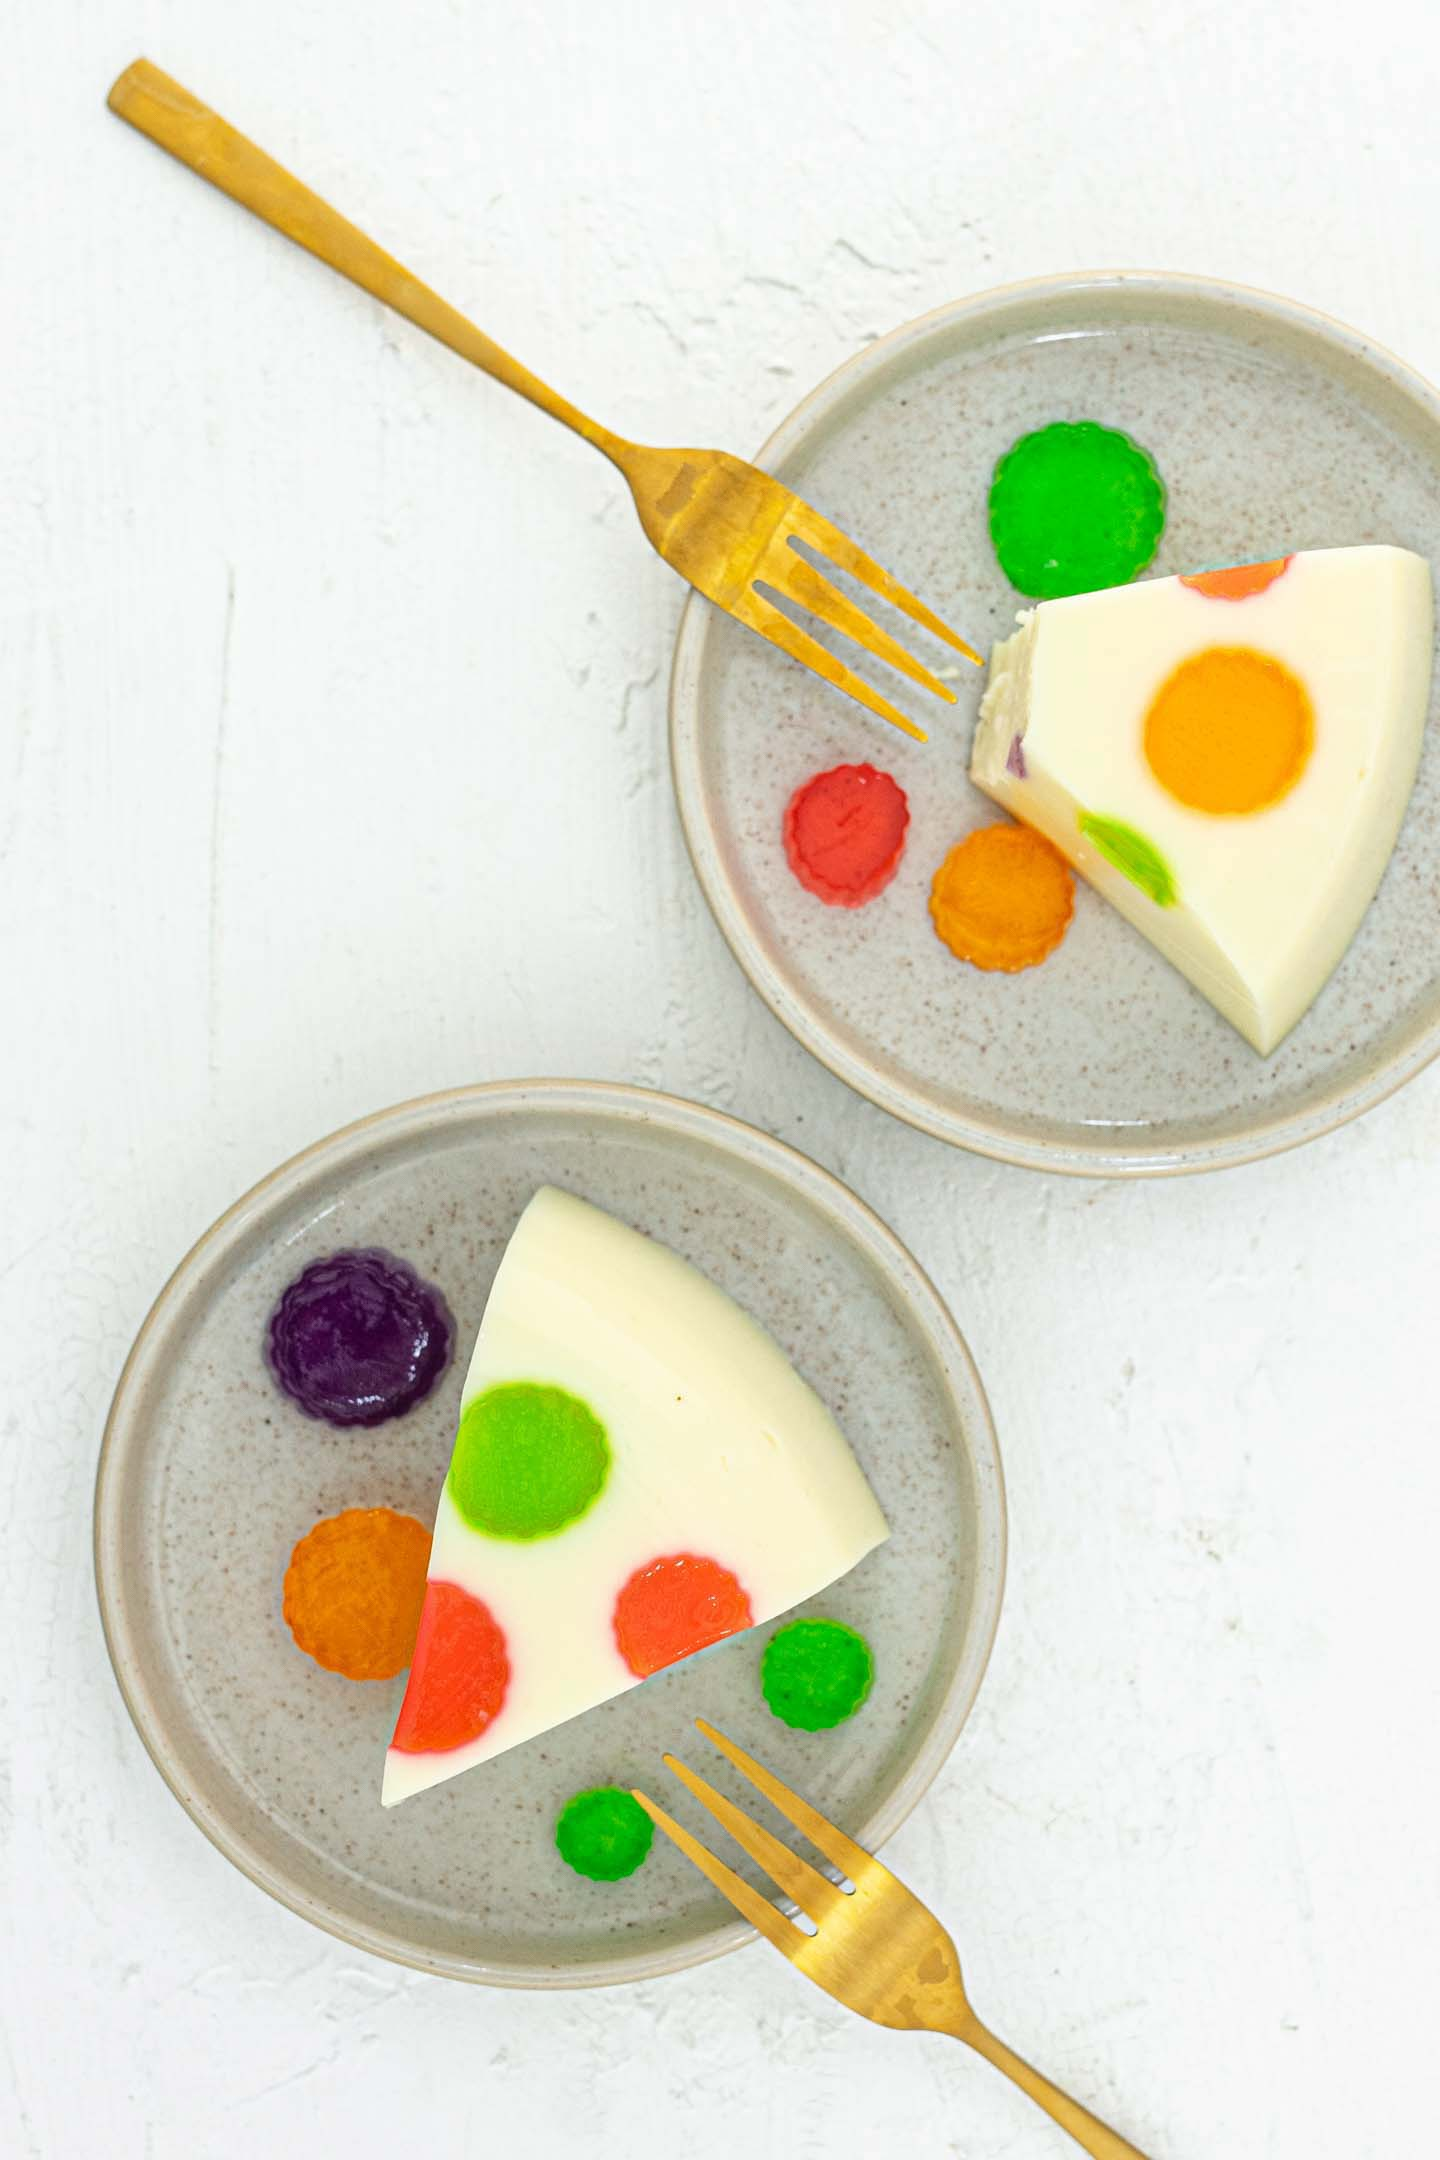 two slices of polka dot jelly cake on two plates